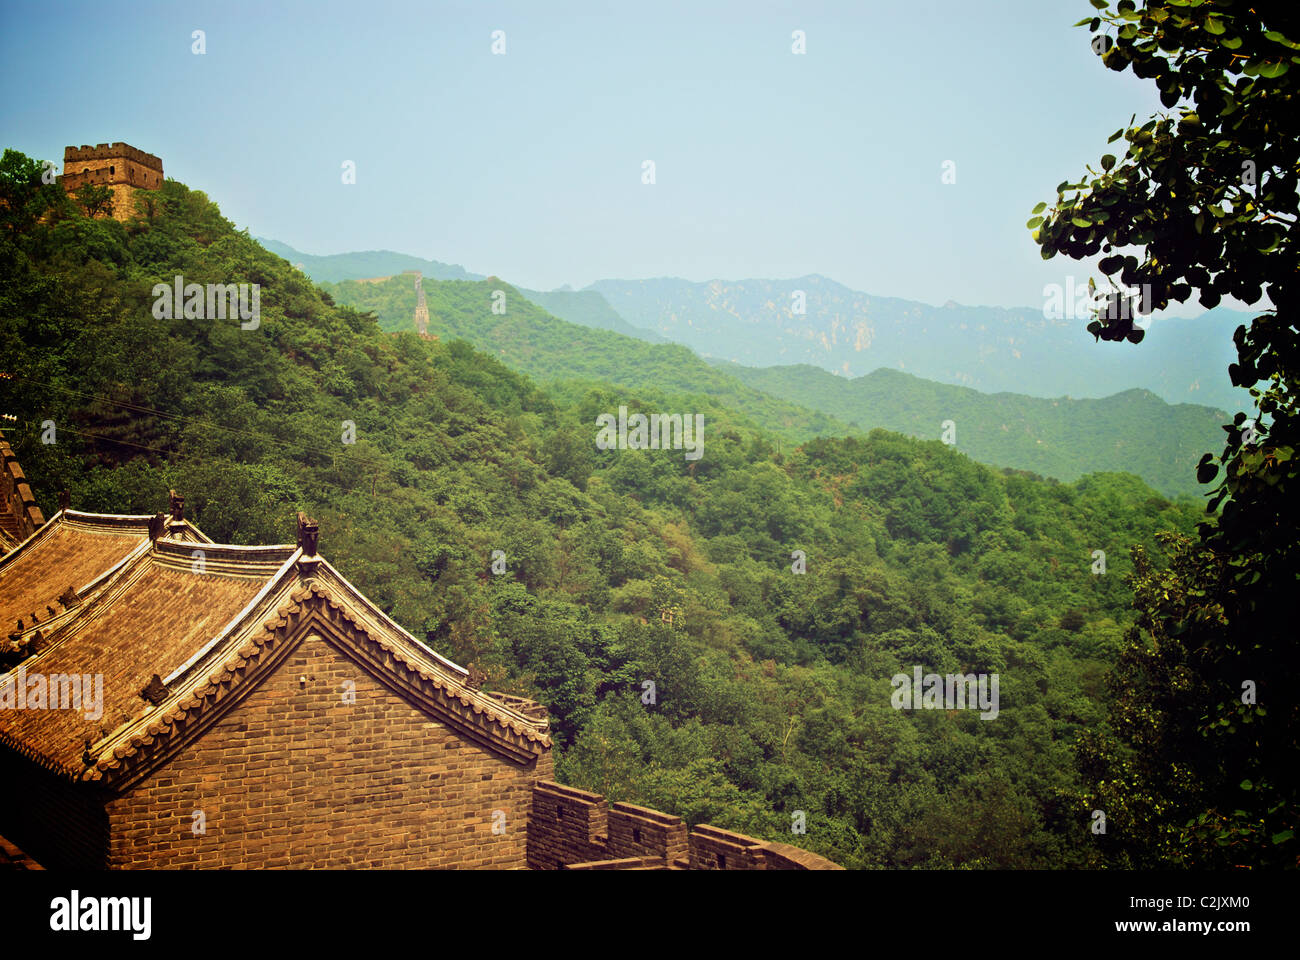 GREAT WALL OF CHINA Stockfoto